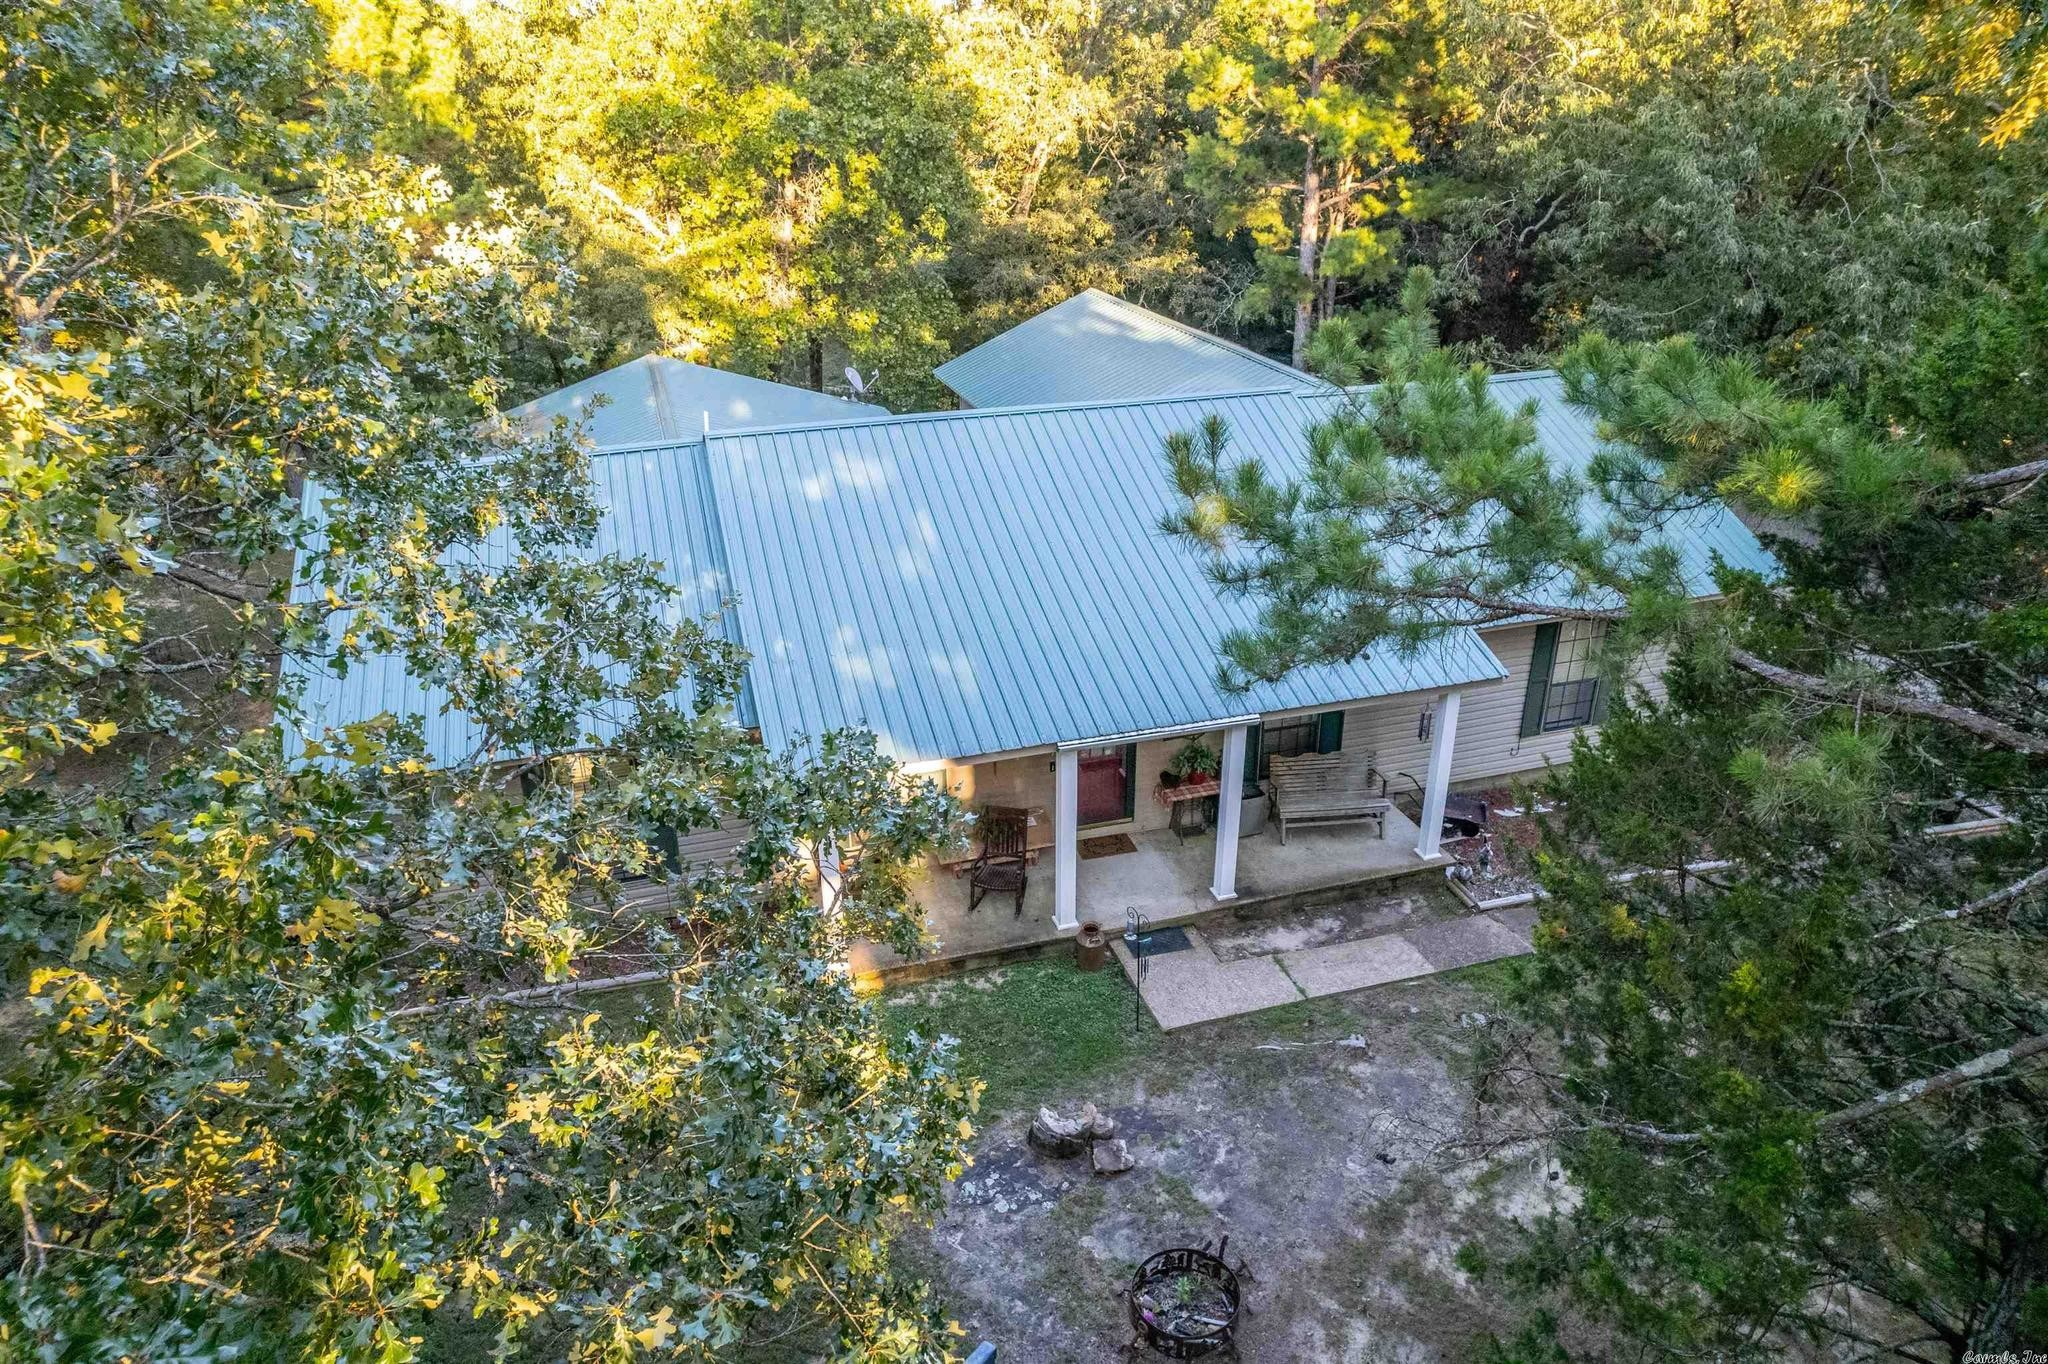 3-Bedroom House In Cave City